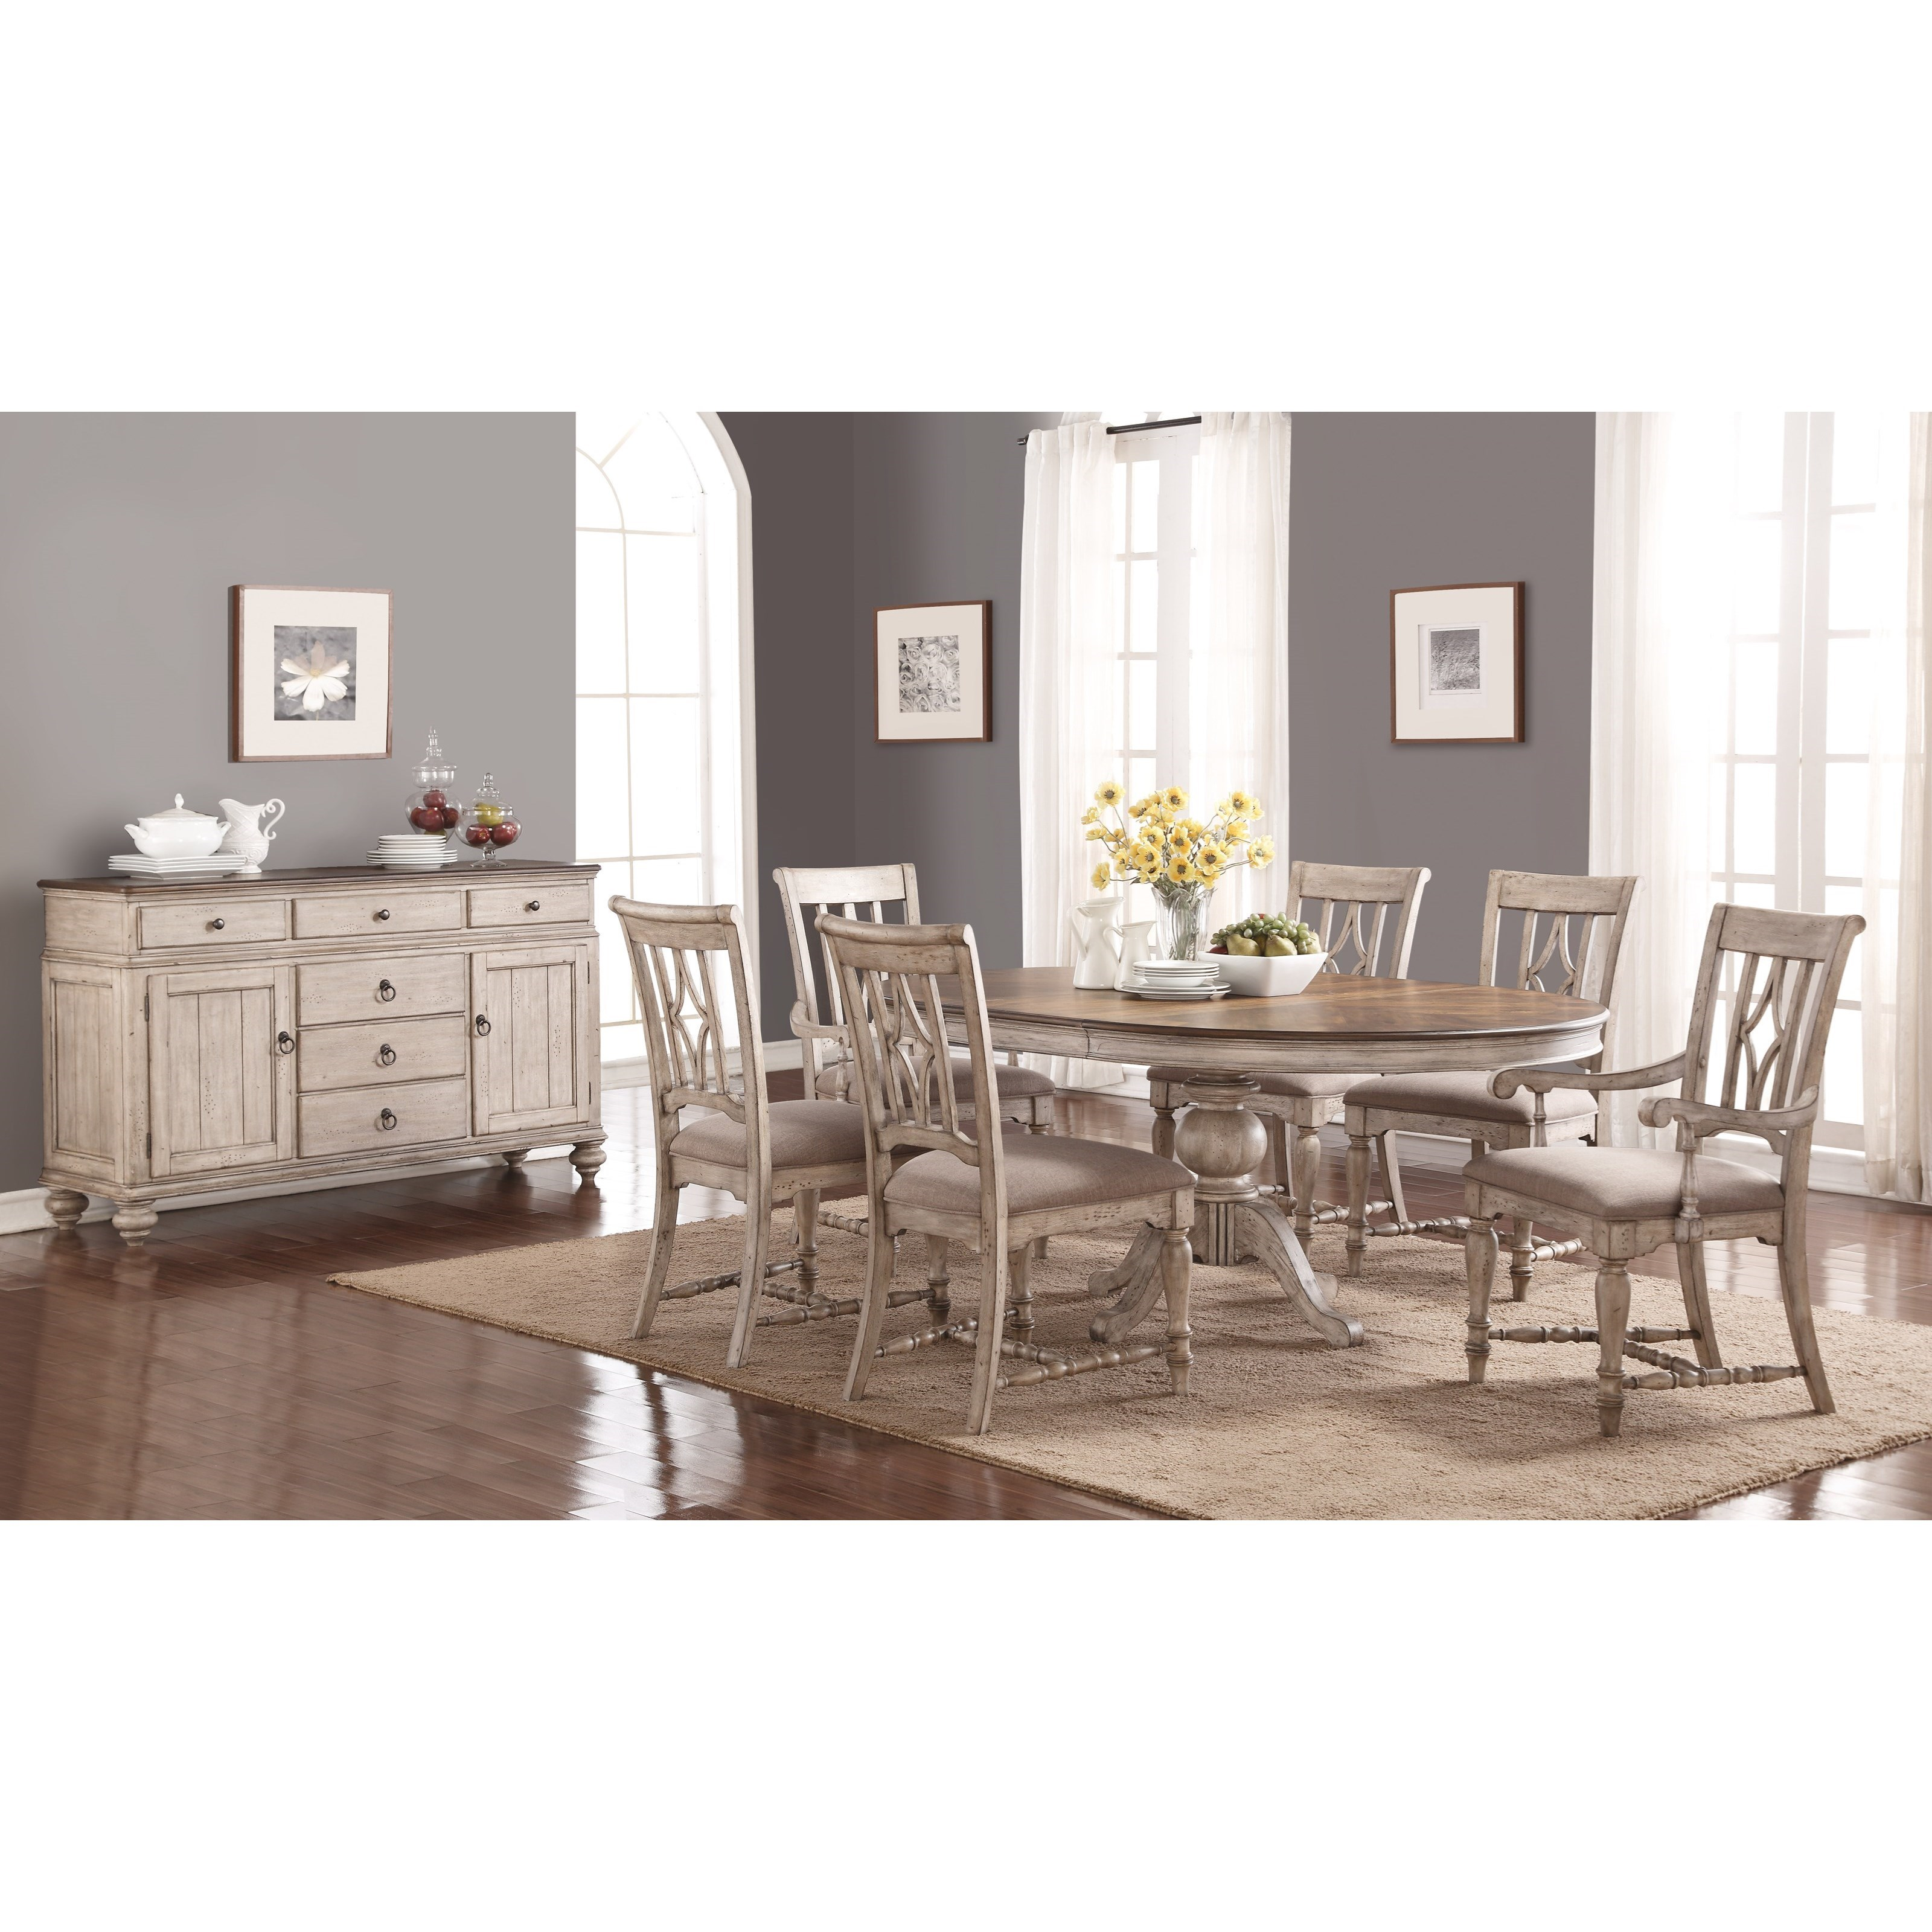 Plymouth Dining Room Group by Flexsteel Wynwood Collection at Northeast Factory Direct